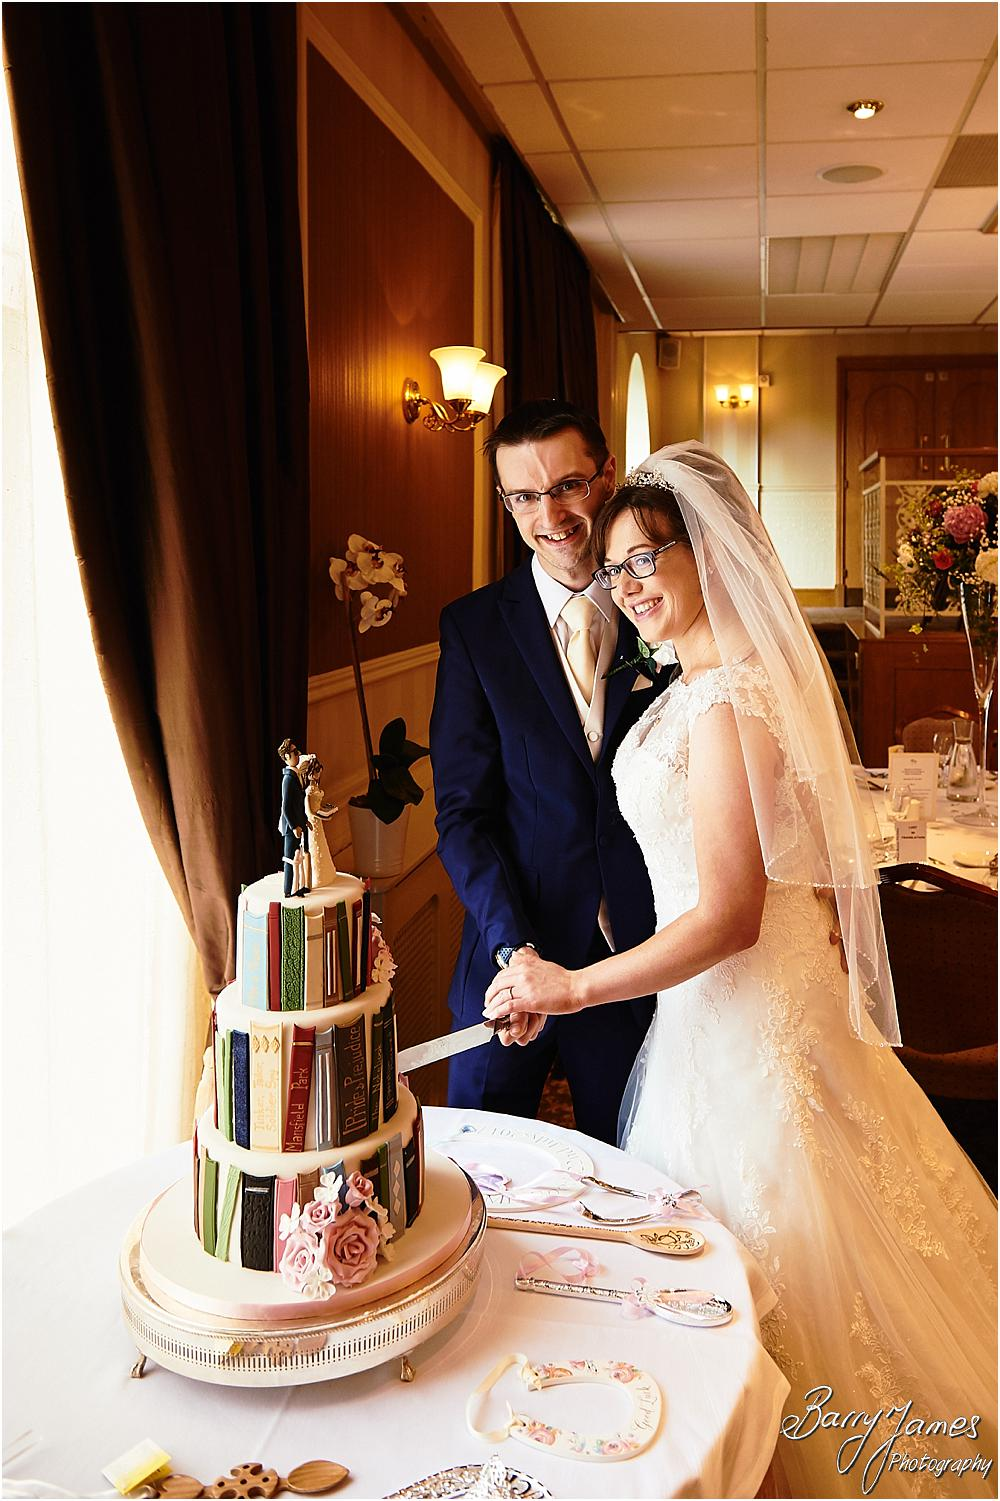 Cake cutting fun at The Fairlawns in Walsall by Walsall Wedding Photographer Barry James